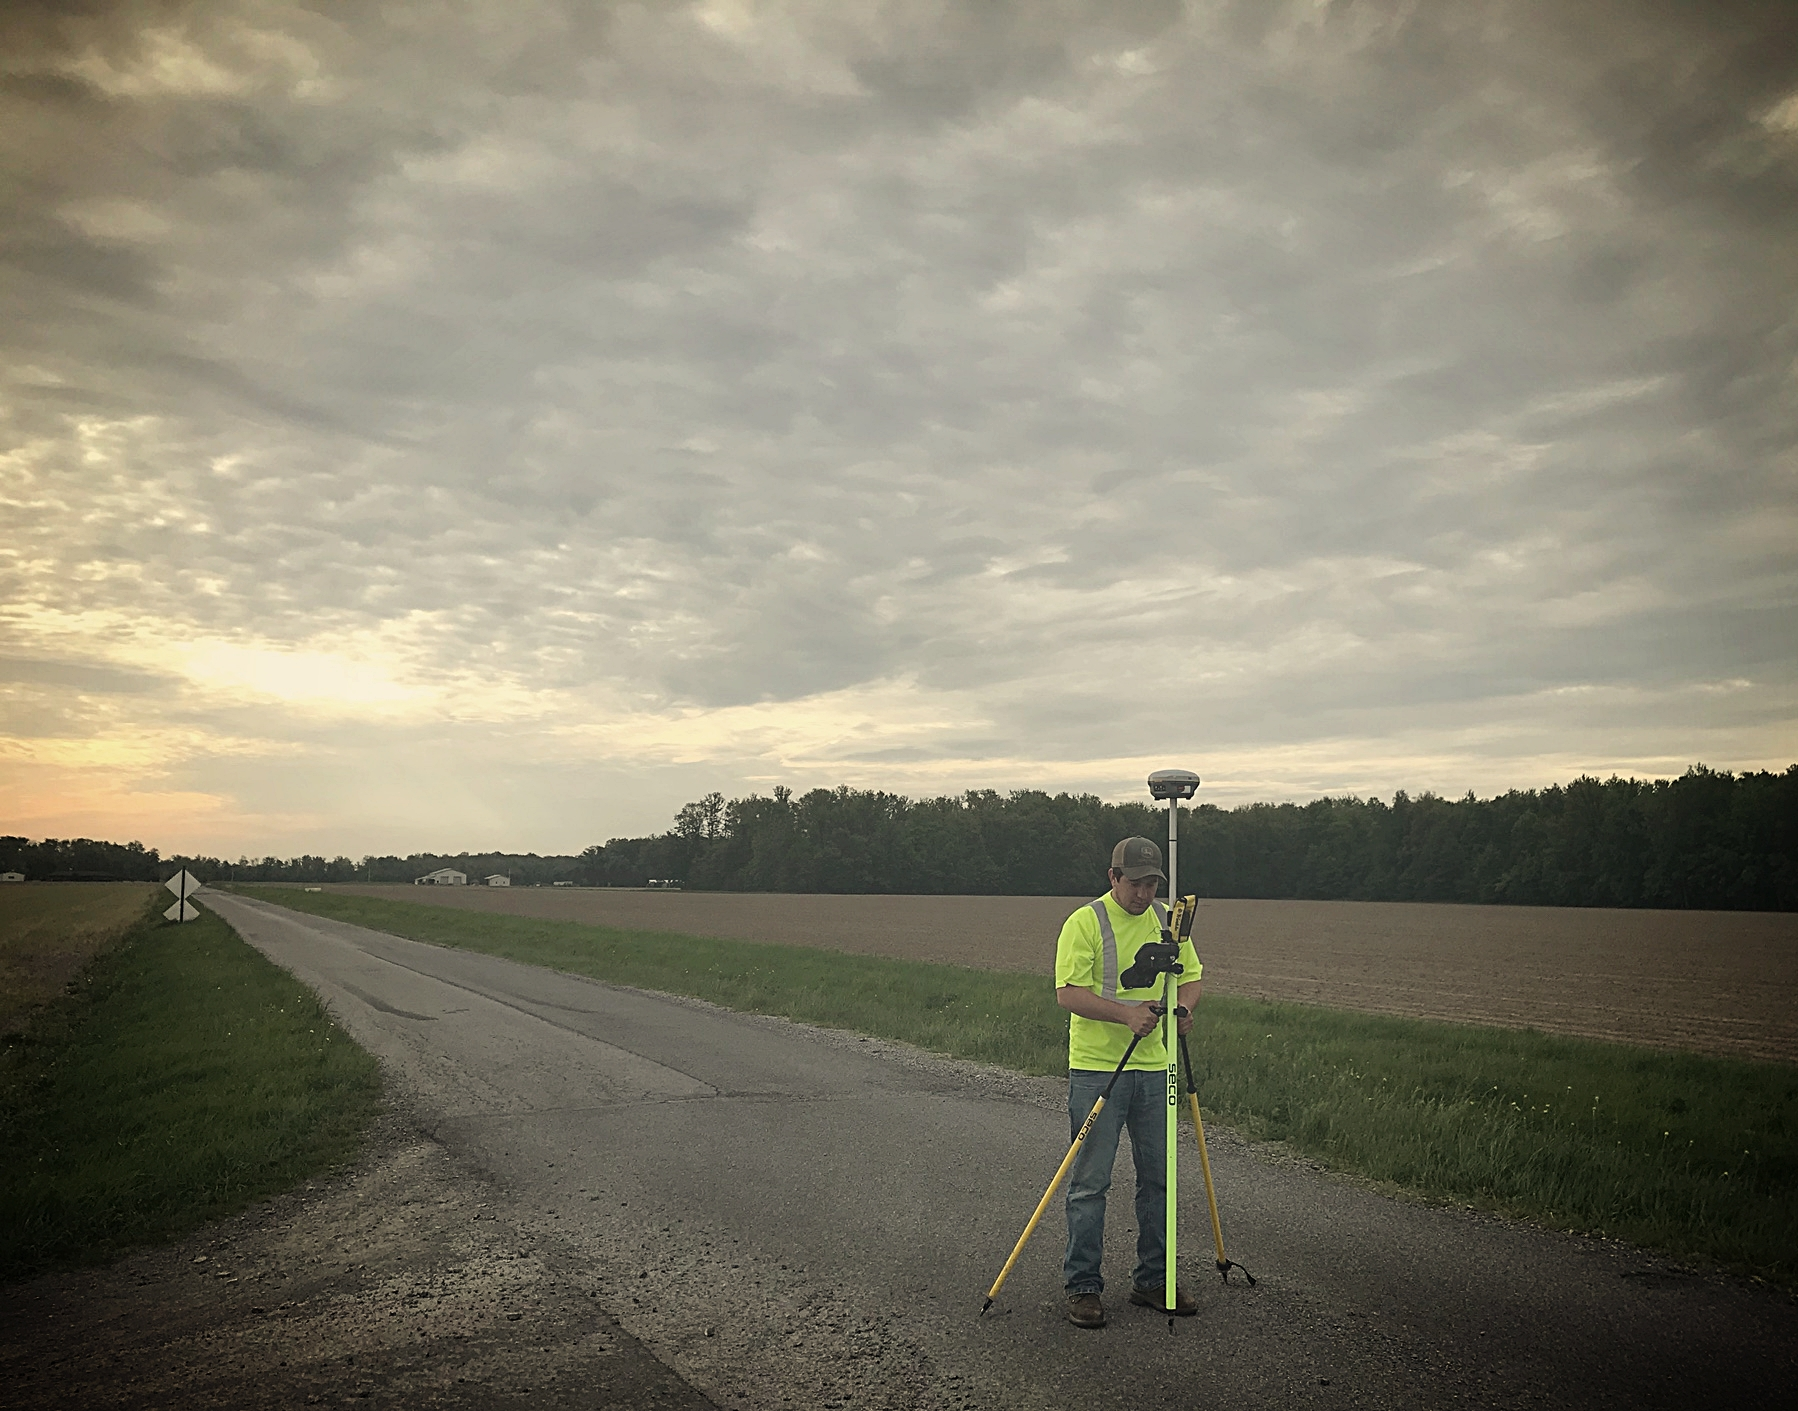 While we work with all of the local surveyors, the Law Office of Amber L. Niese, LLC is located at the same location as Niese Surveying & Engineering, LLC, which solely owned and operated by Amber's husband, Justin H. Niese, P.E., P.S., C.F.M. The teamwork and collaboration of the two separate businesses offers an efficient and cost-effective process from start to finish. If you wish to utilize the services of both businesses for your real estate work, please review the  disclosure statement  which is posted at the office and is also reviewed with each client utilizing both businesses.